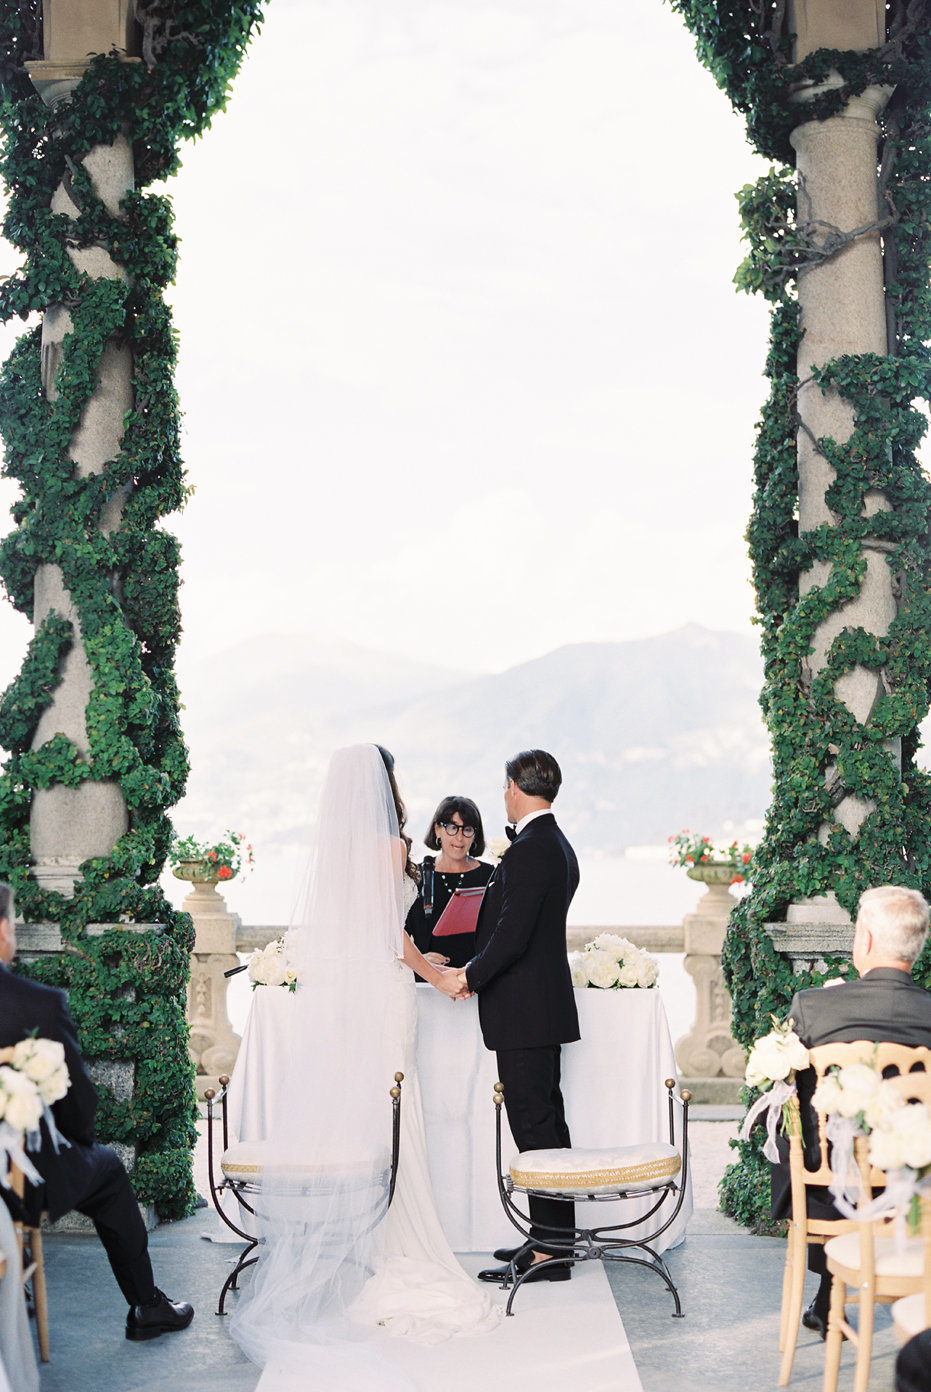 lake_como_italy_villa_balbianello_destination_wedding_melanie_gabrielle_049